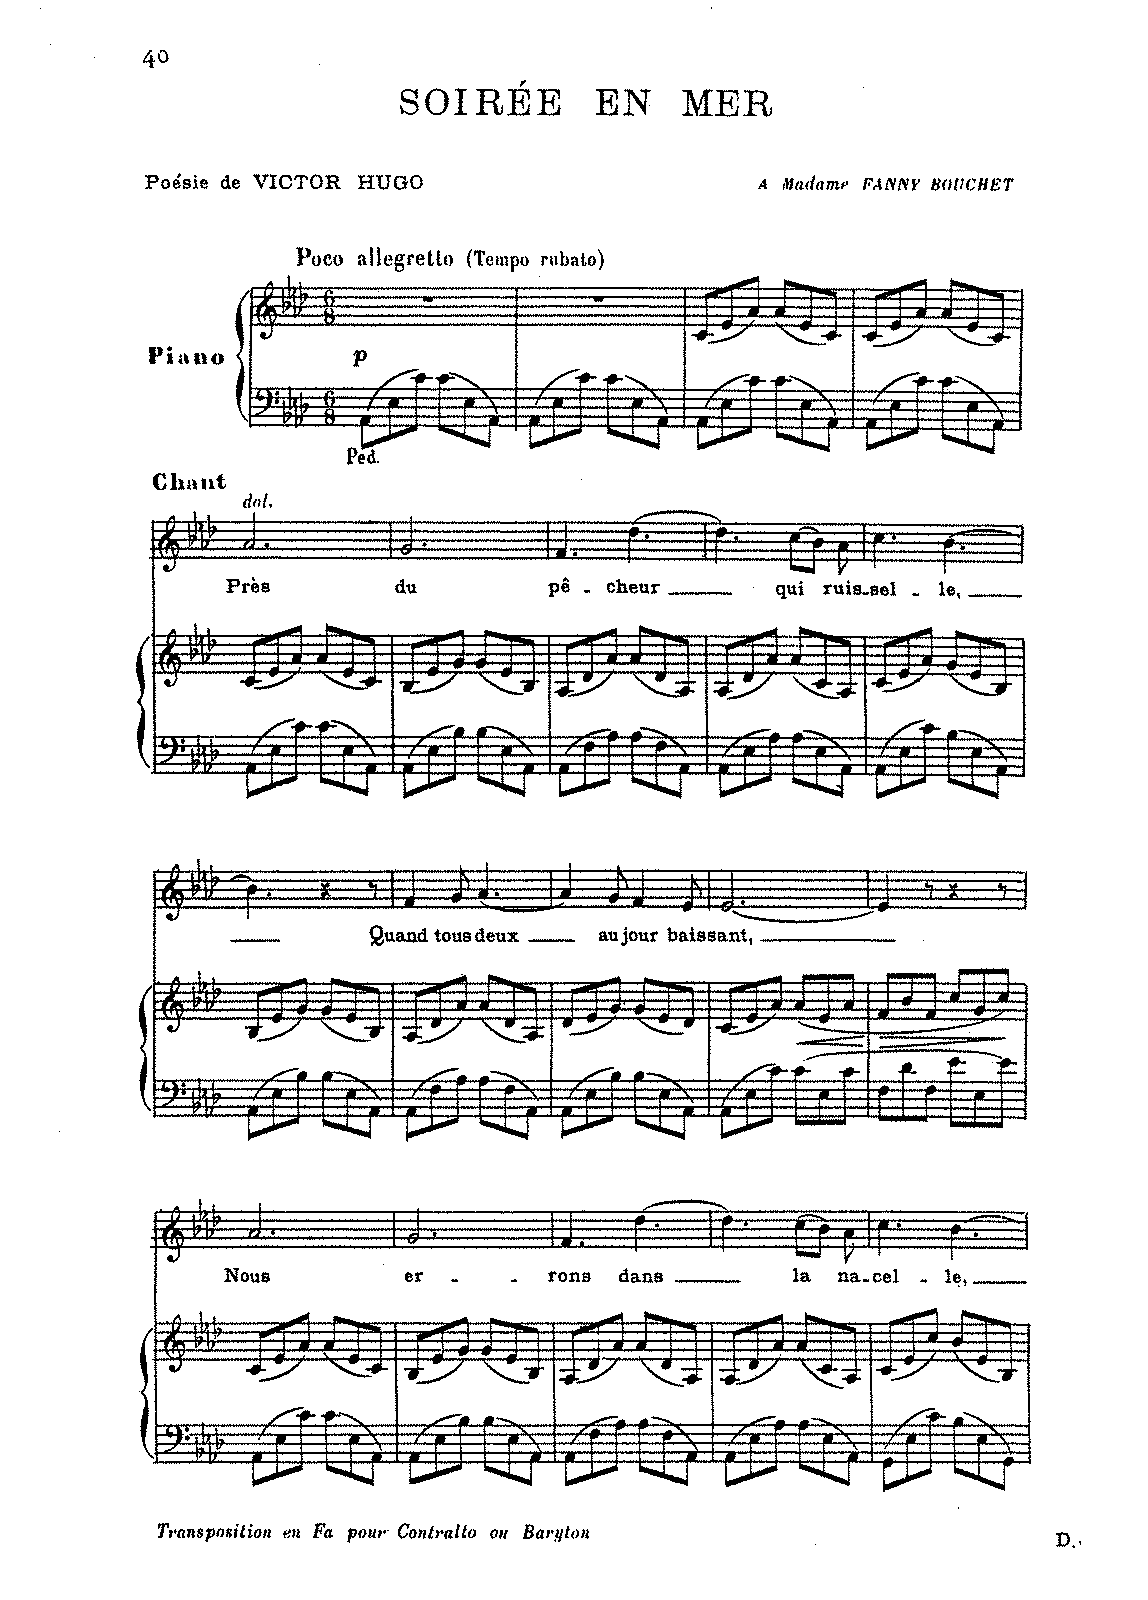 PMLP122444-Saint-Saëns - Soirée en mer (voice and piano).pdf